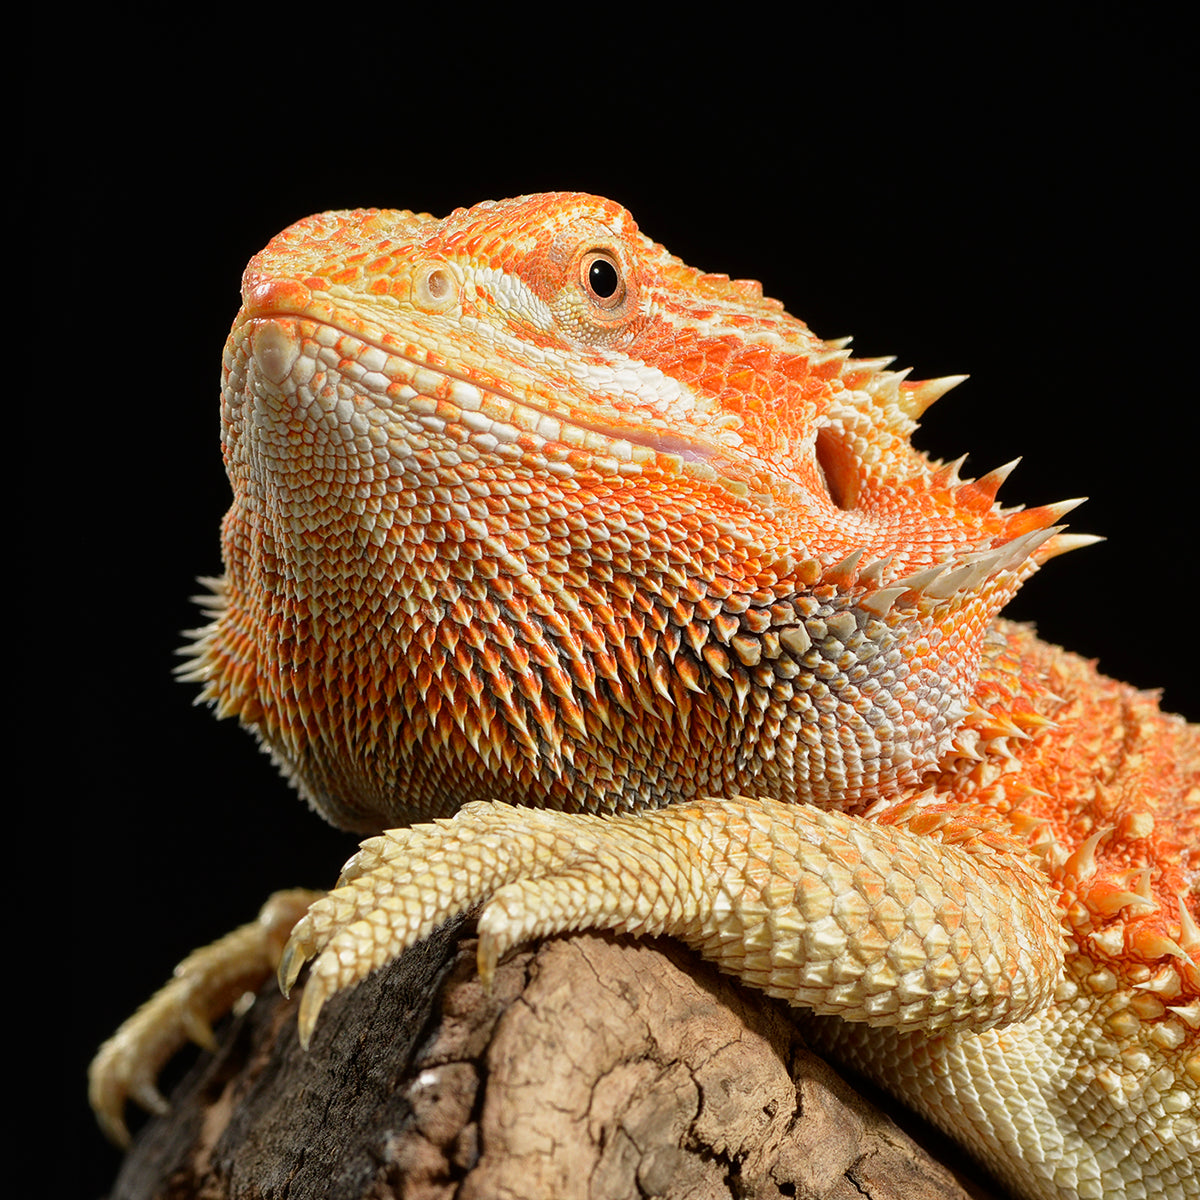 Recommended Products for Bearded Dragons